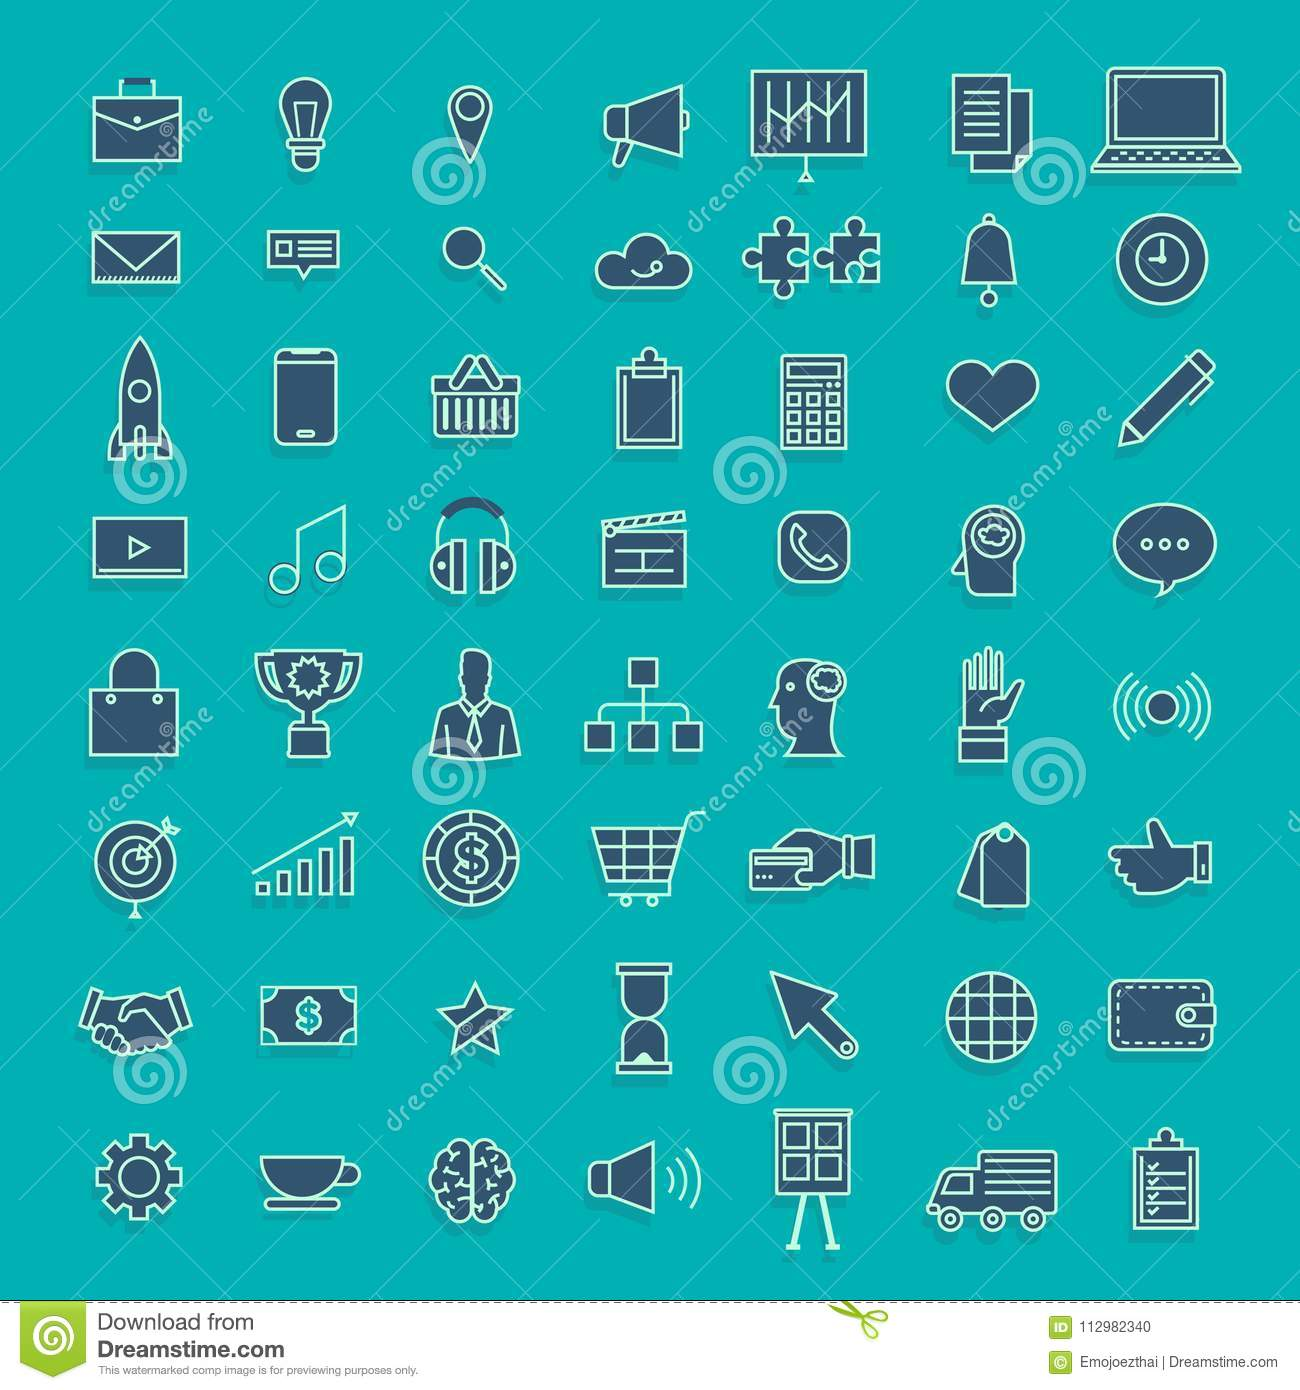 Vector set icons thin line concept business and technology content. Flat design illustration.